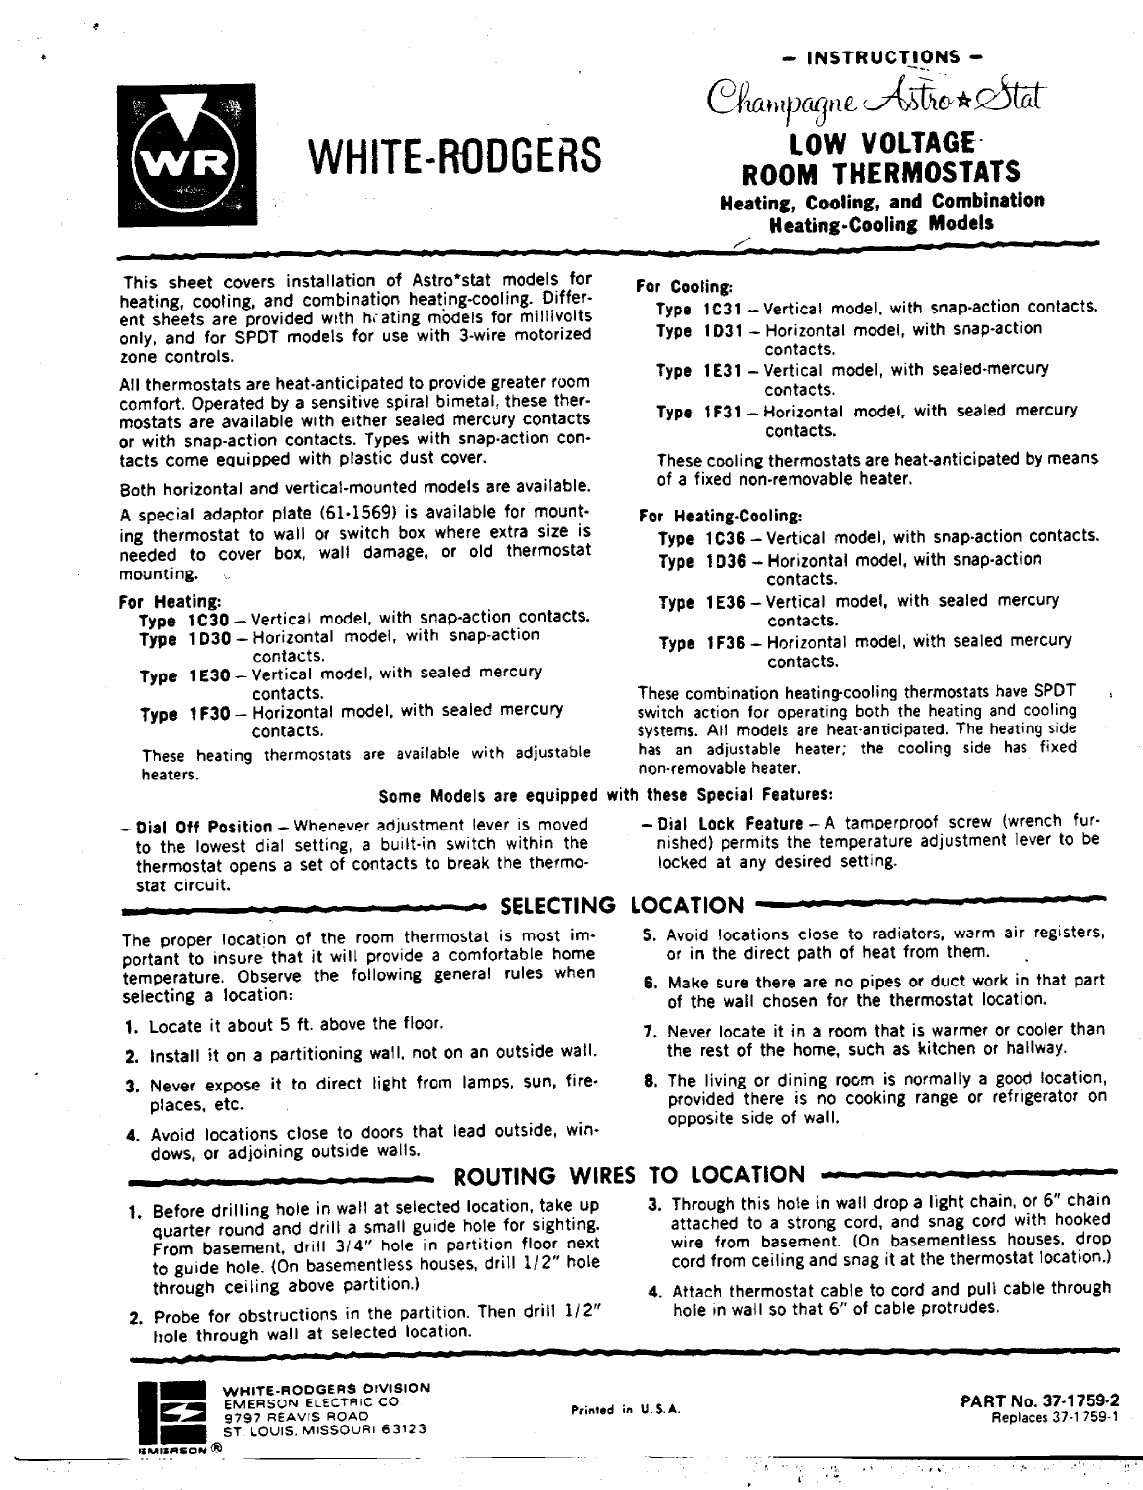 white rodgers thermostat manual pdf